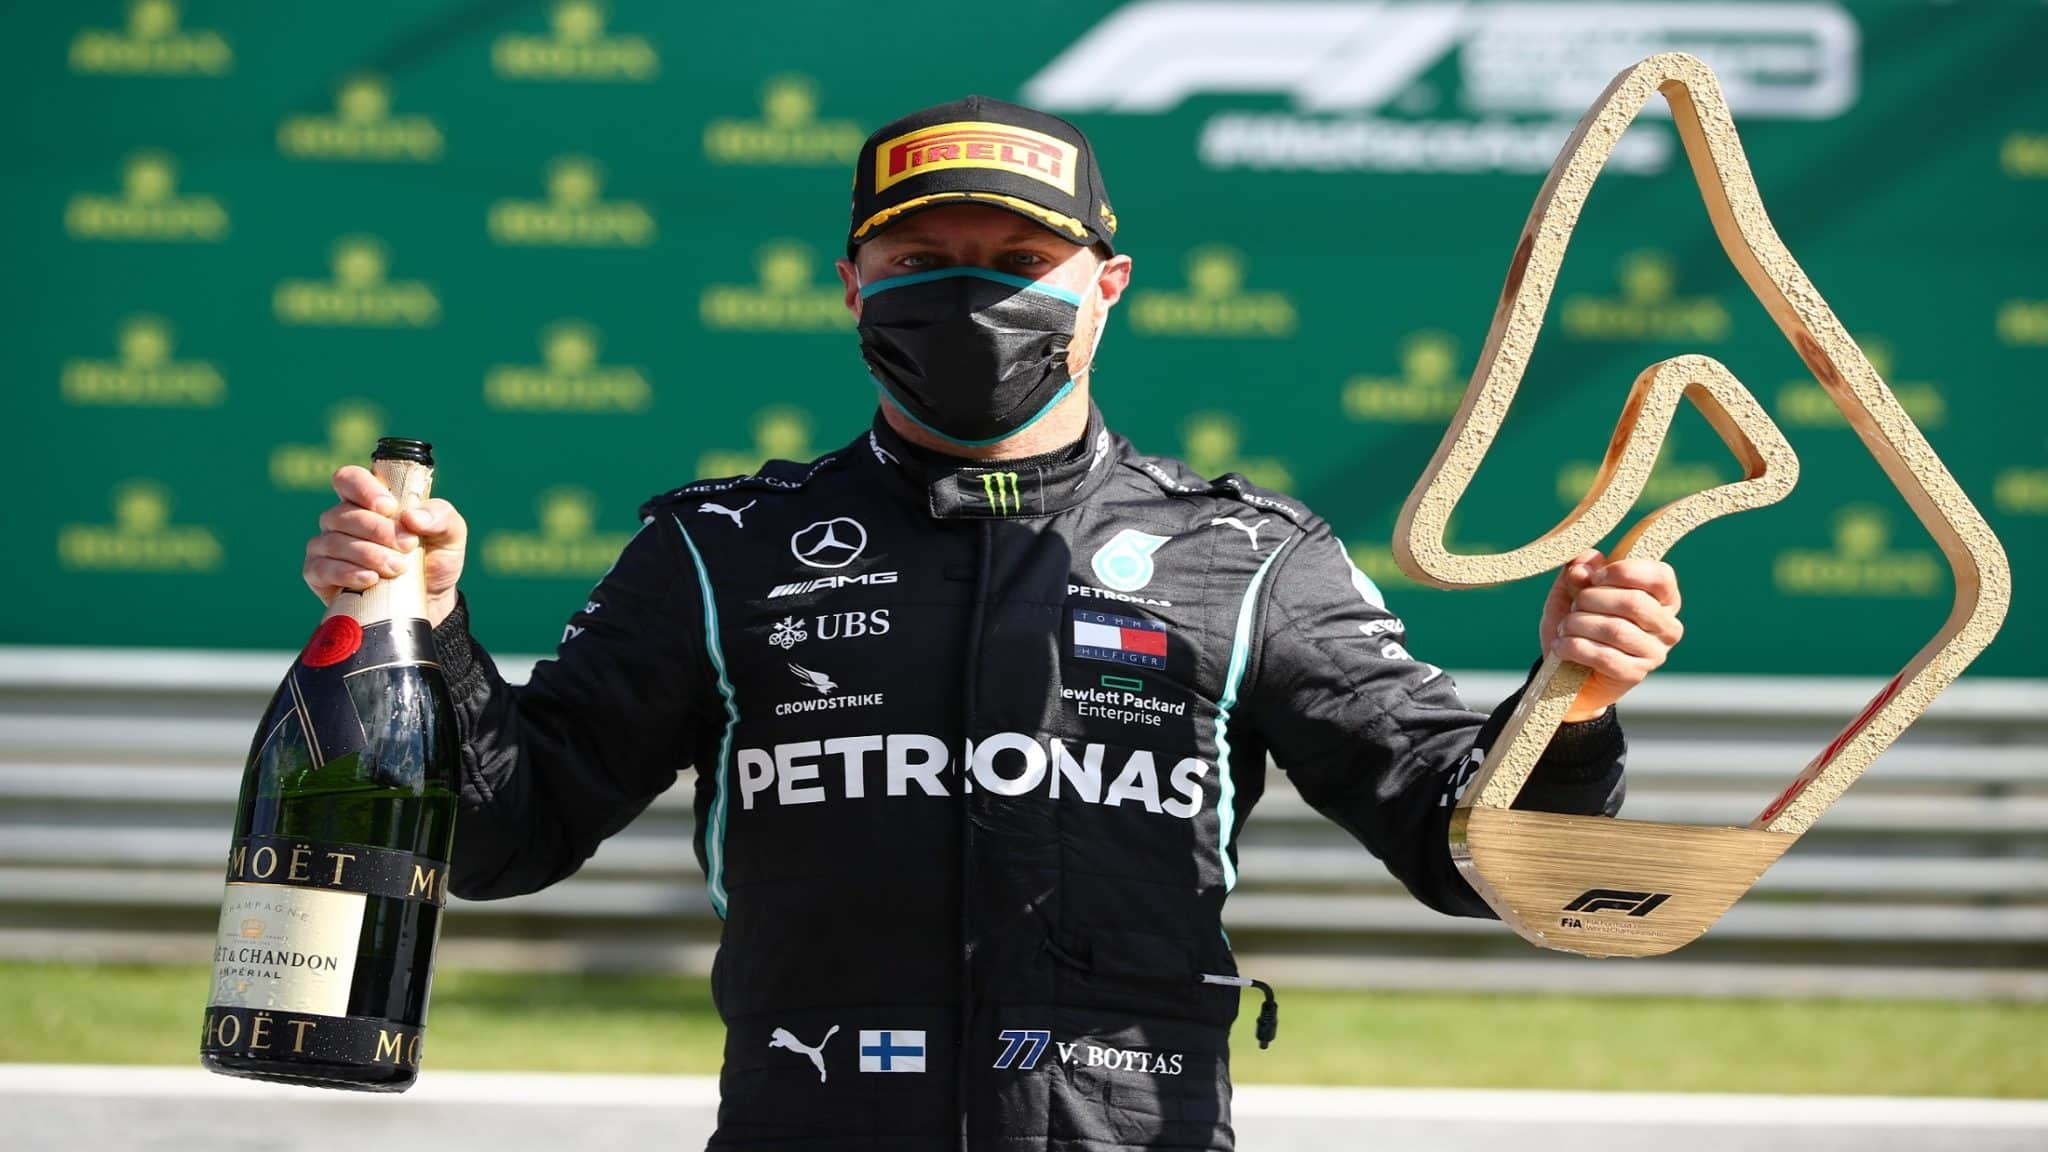 Lewis Hamilton Is Arguably The Best Driver On The Grid